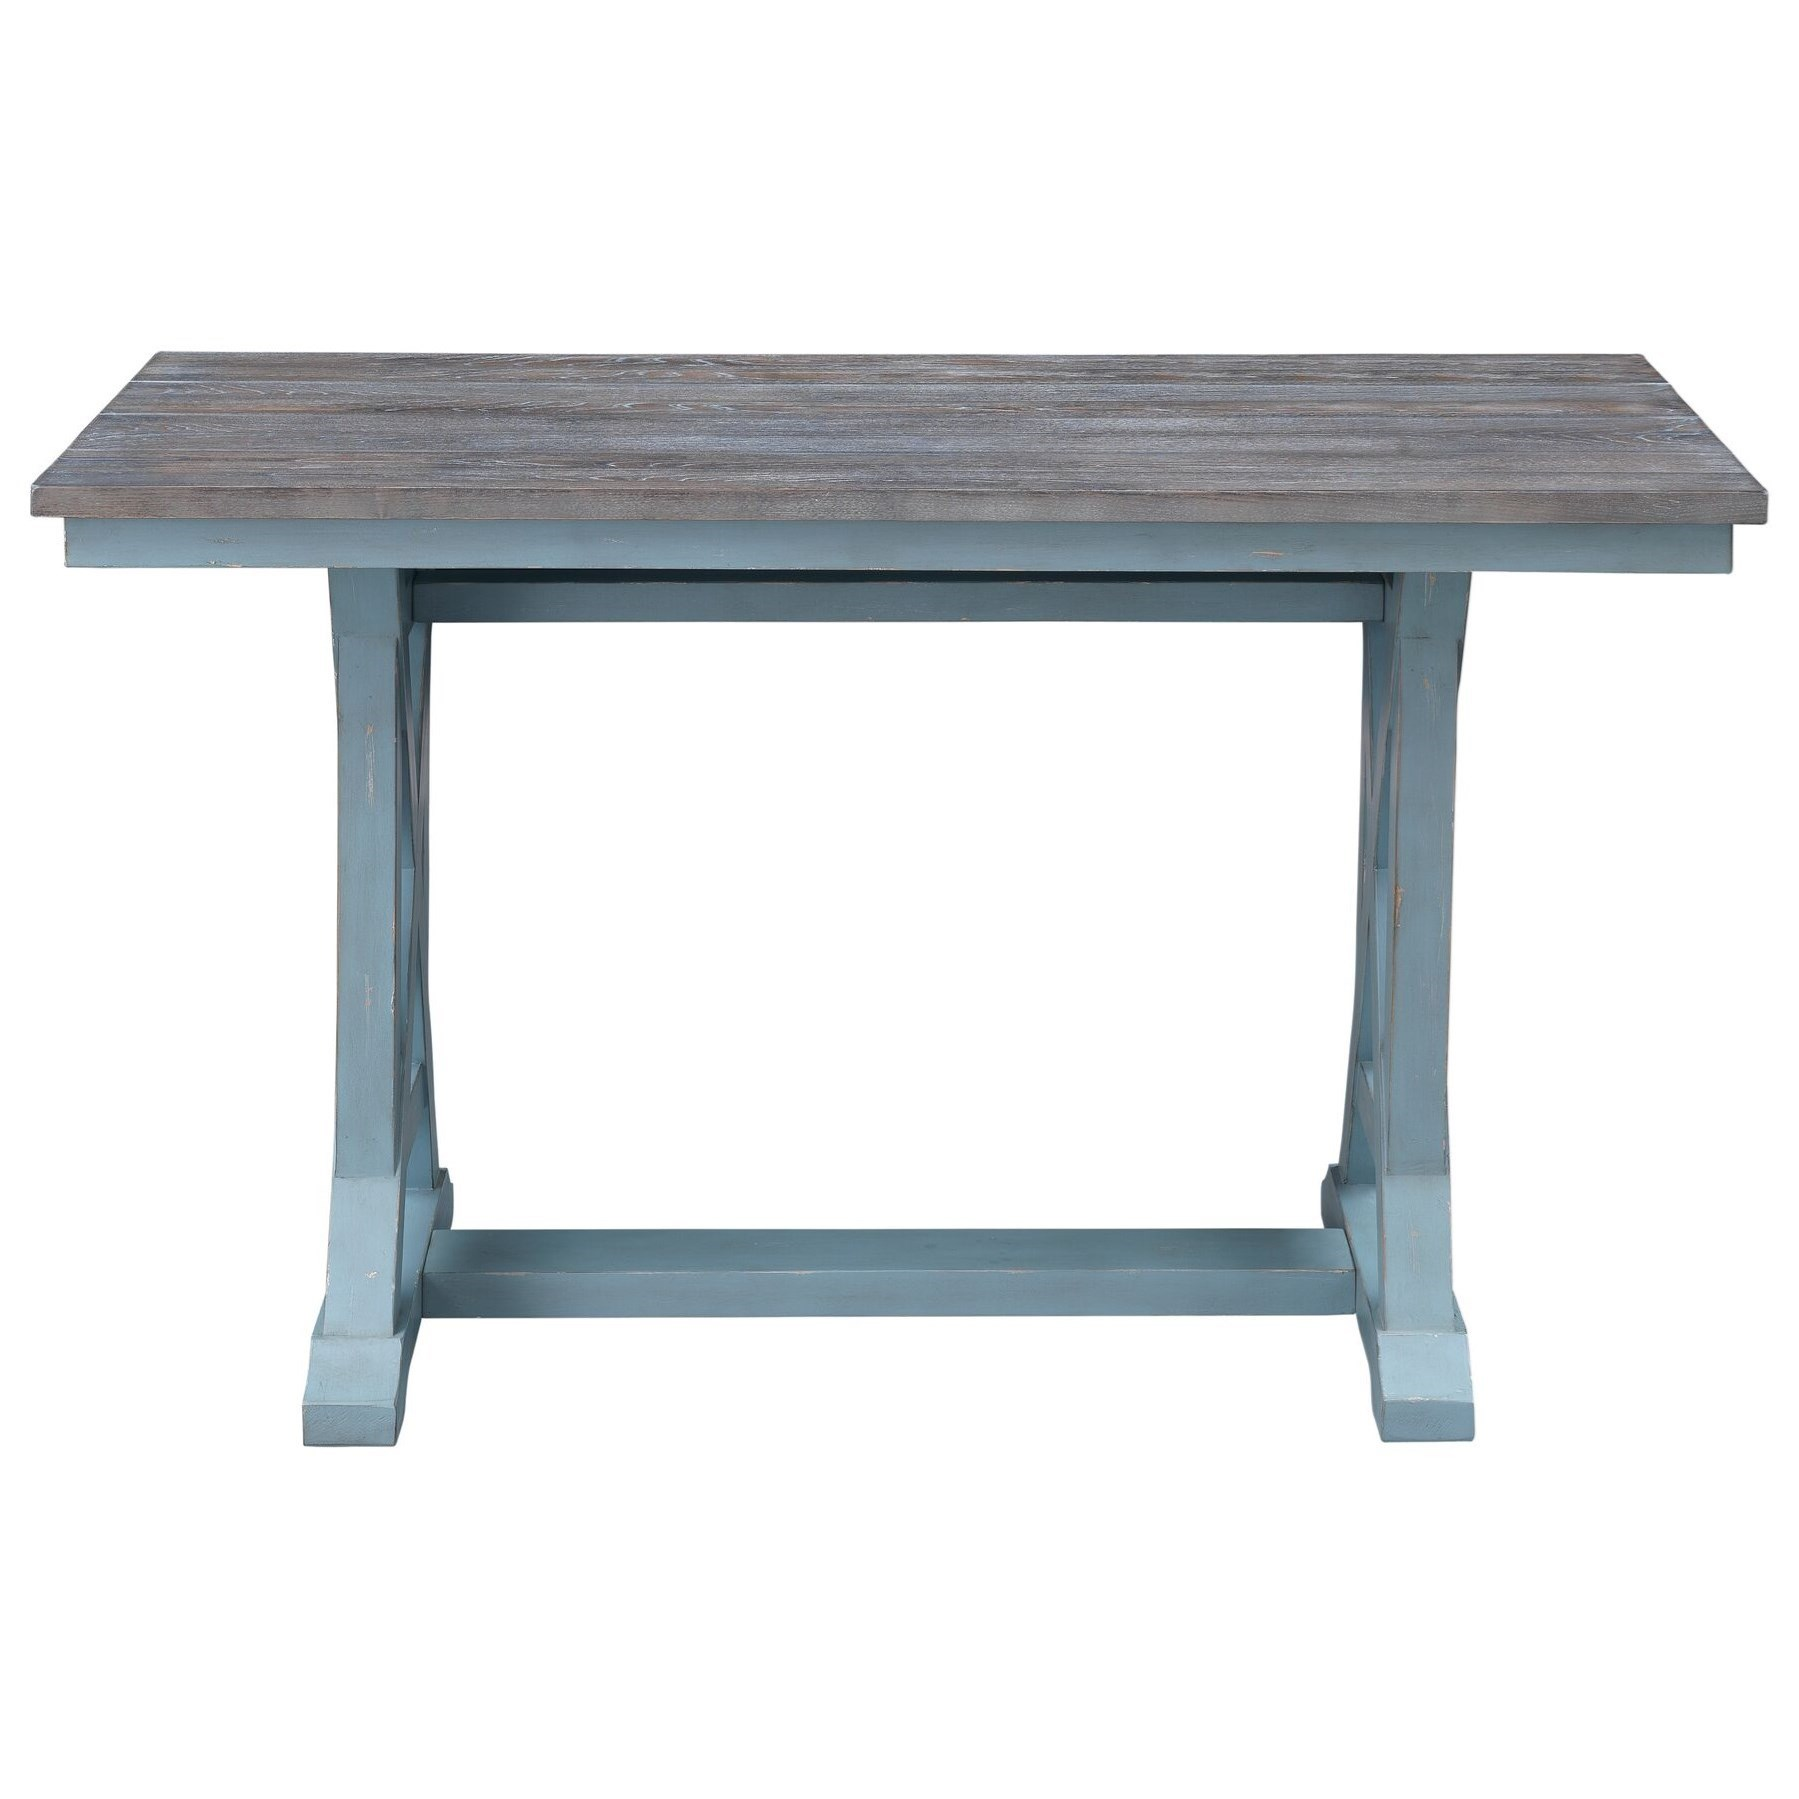 Bar Harbor Counter Height Dining Table by Coast to Coast Imports at Zak's Home